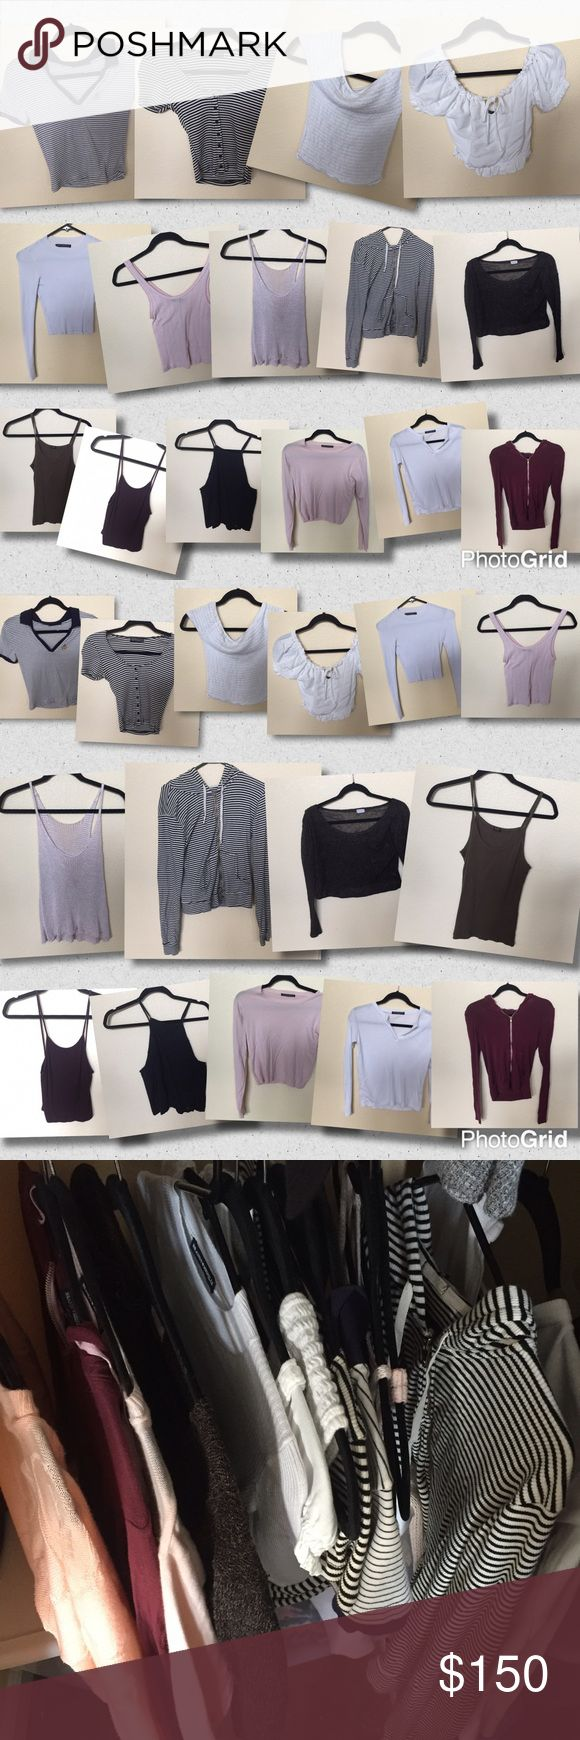 Brandy Melville Lot Bundle collection selling ALL All tops 16 pieces total - selling my last season Brandy collection - zip ups tanks shirts and sweaters - a couple are John Galt but most have the brandy Melville tag - some are worn pretty heavily (the maroon zip up hoodie and the white mock turtleneck) but the rest were only worn once or twice and some are NWOT - a couple don't have tags but they are all from the store in San Francisco . They are all one size fits all but I would say…